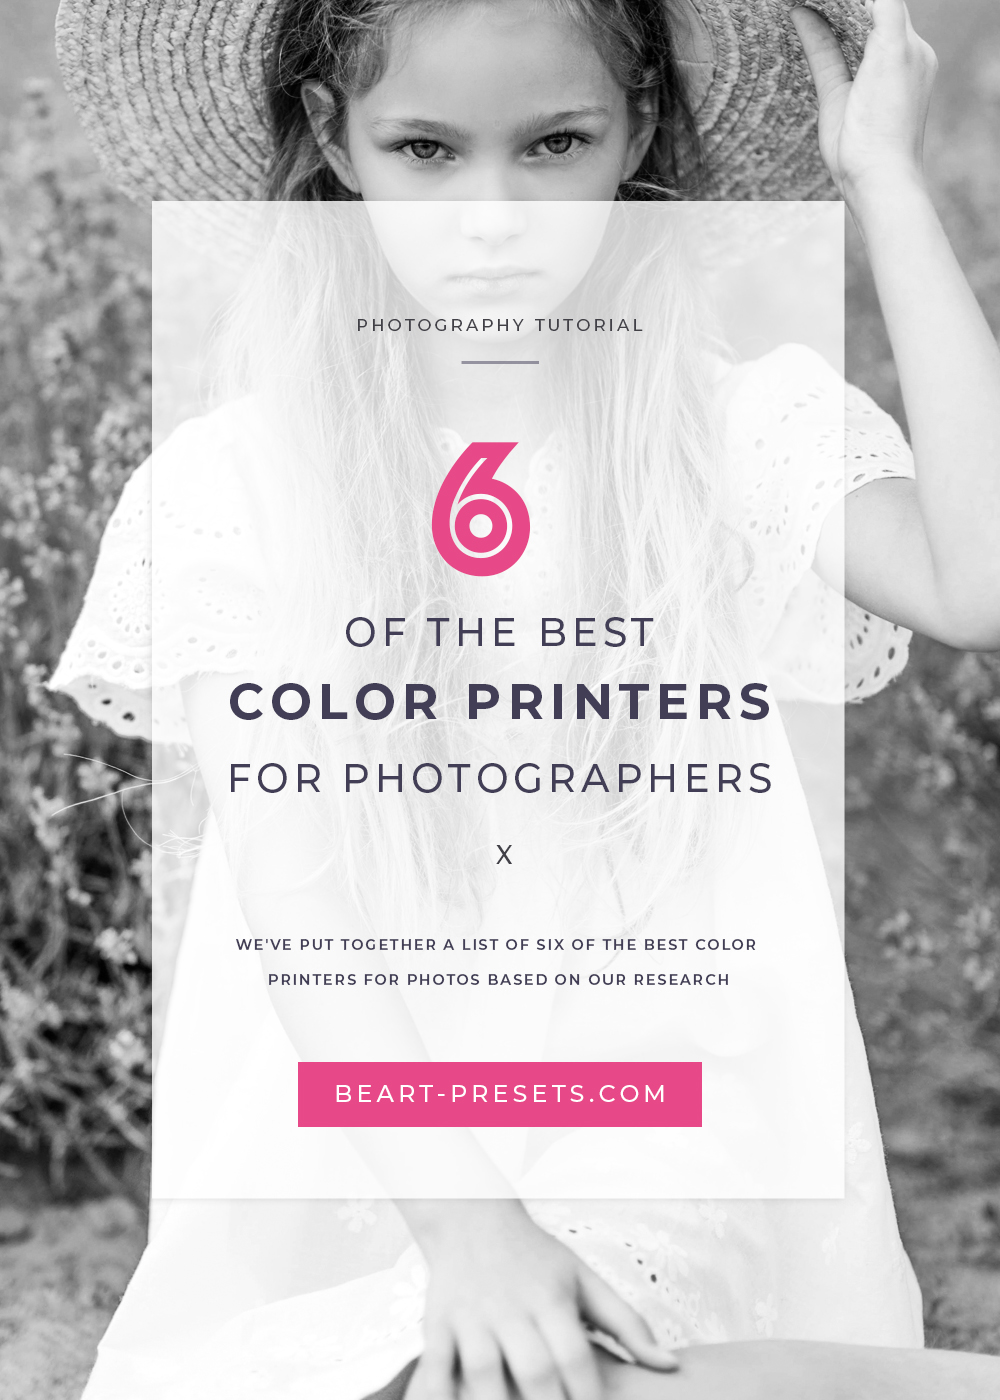 THE best color printers for photos